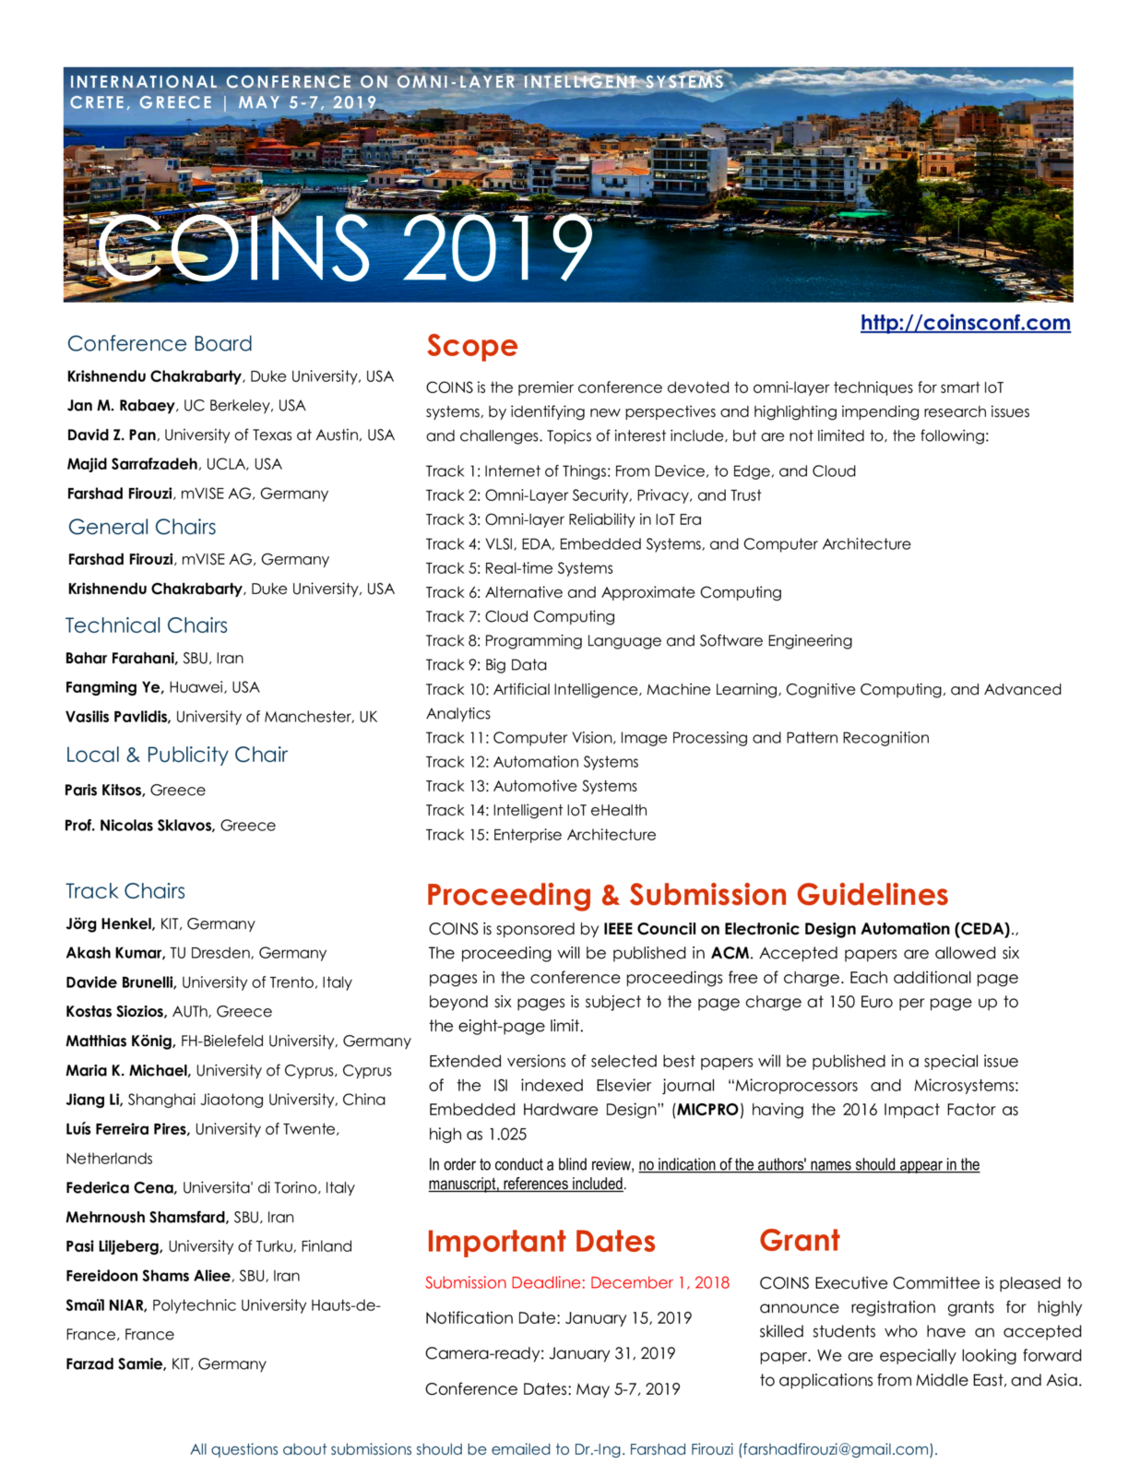 Call For Papers Coins 2019 Ieee Council On Electronic Design Automation